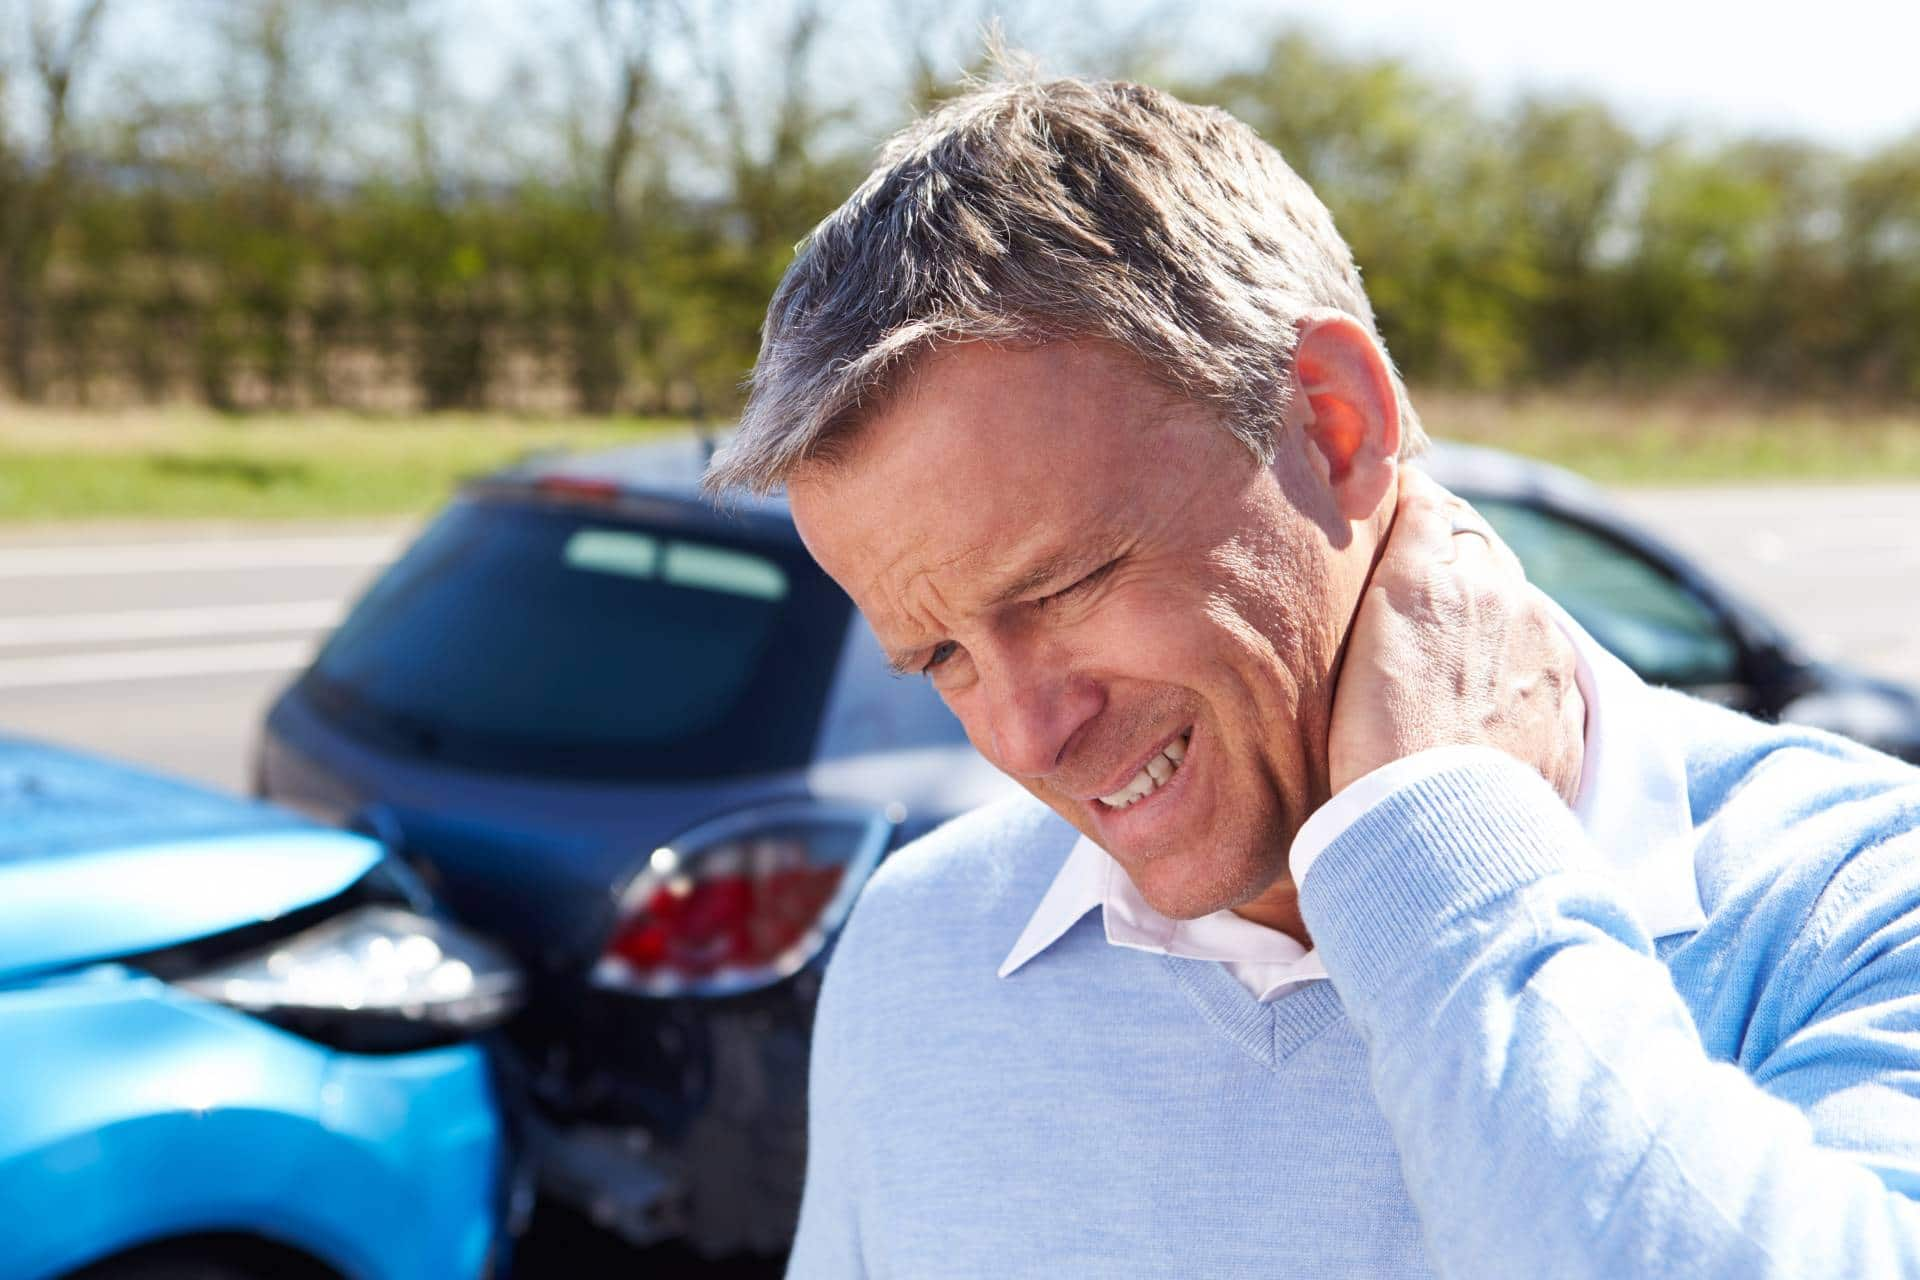 Hurt in a car accident? Schedule a free consultation with our personal injury lawyers at the Angell Law Firm in Peachtree Hills.